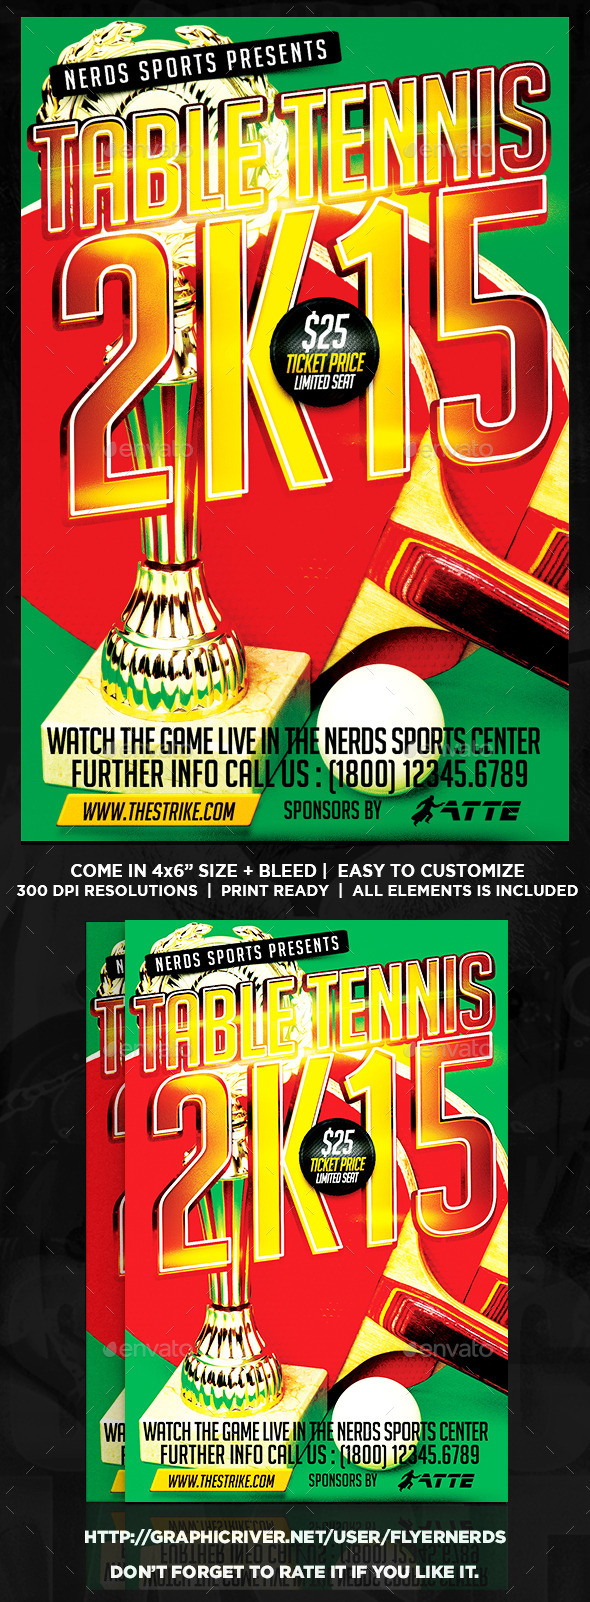 Table Tennis 2K15 Tournament Sports Flyer - Sports Events